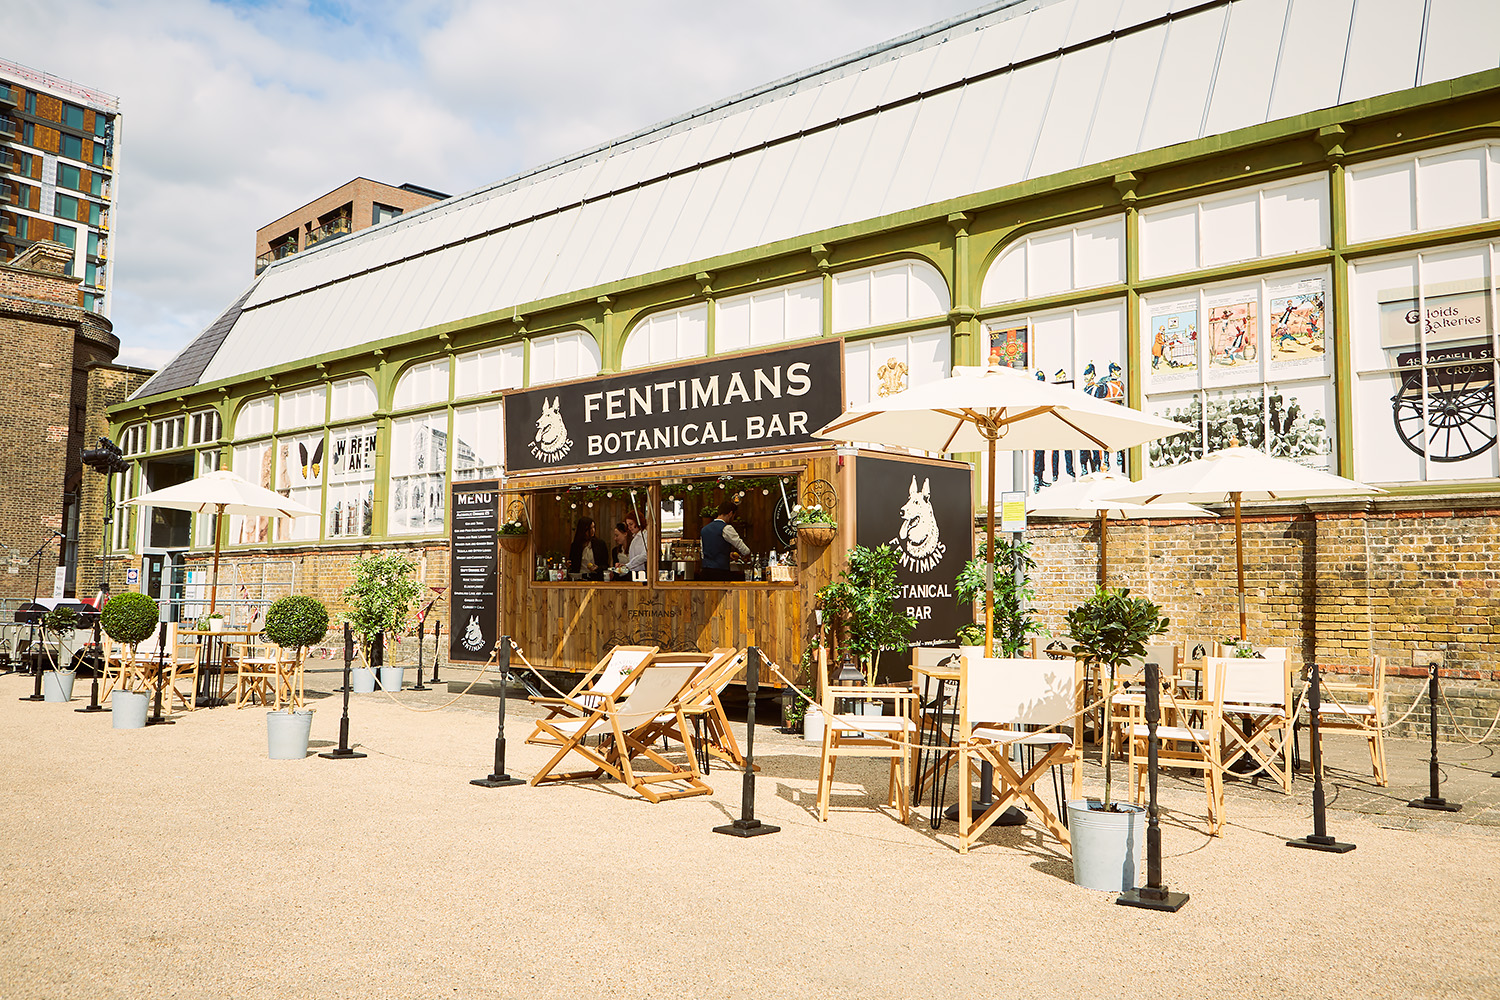 Fentimans Botanical Bar